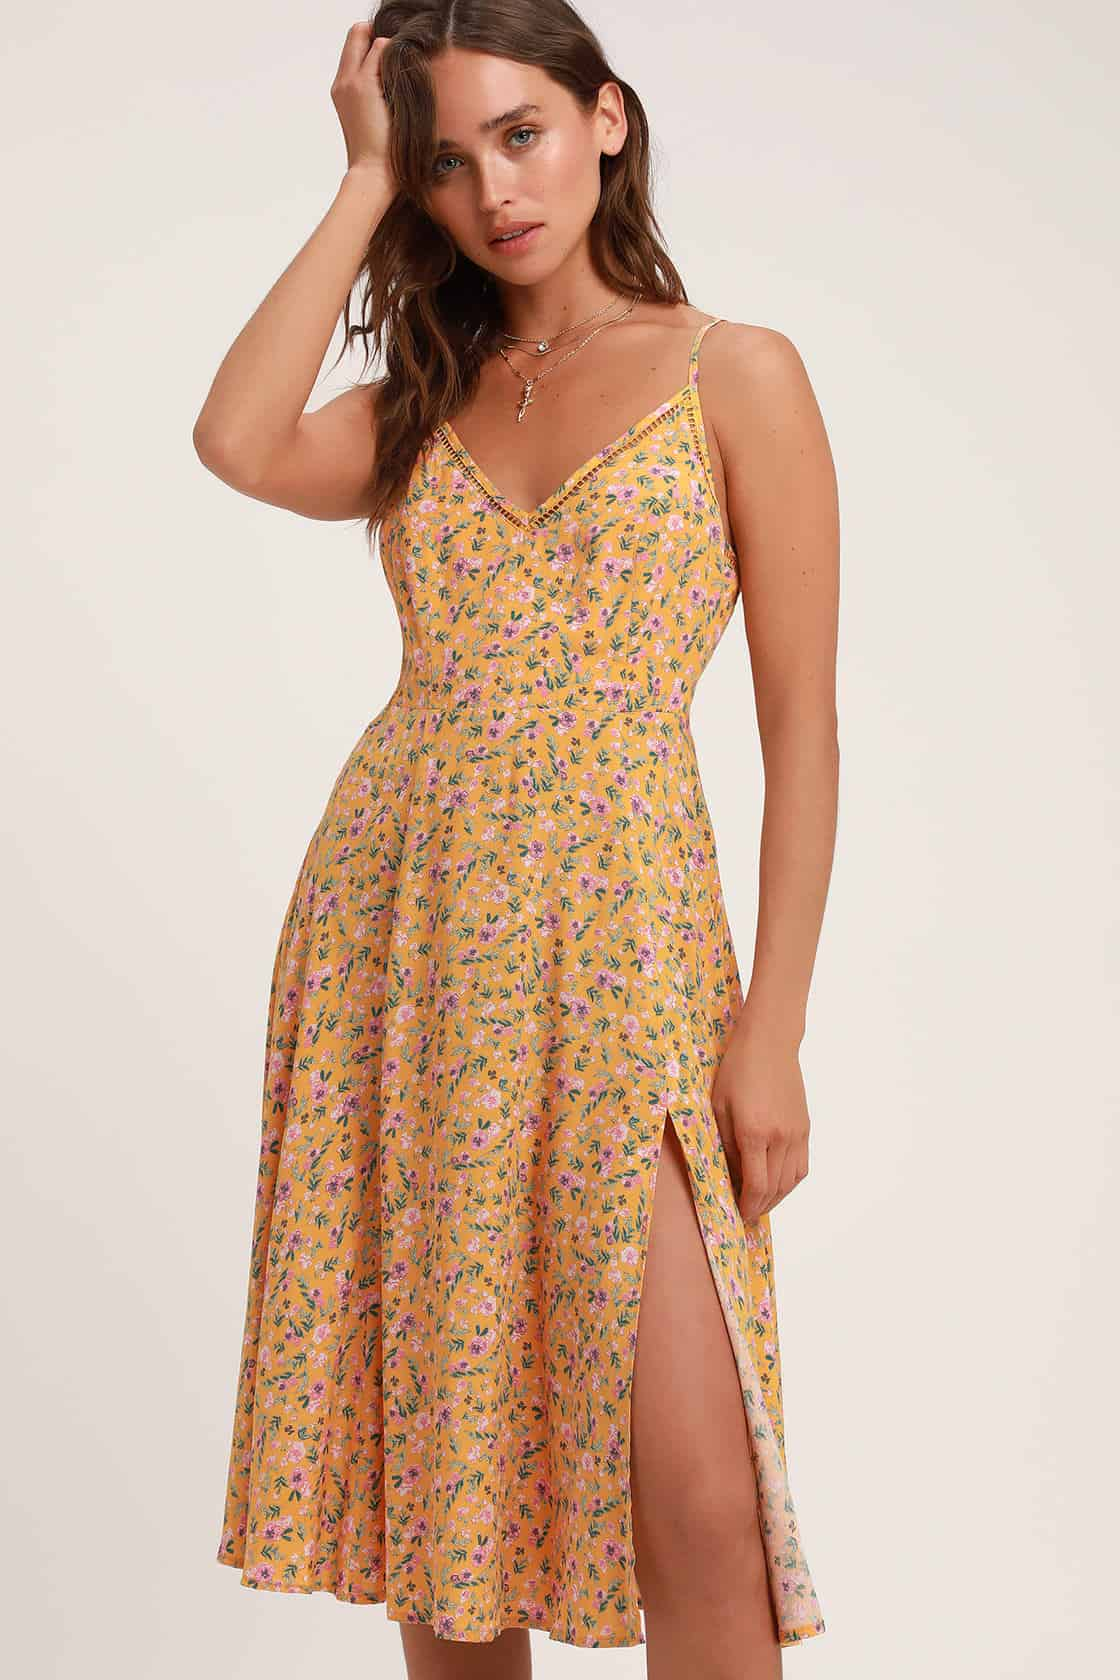 Summer Honeymoon Outfits for Her Yellow Floral Print Midi Dress